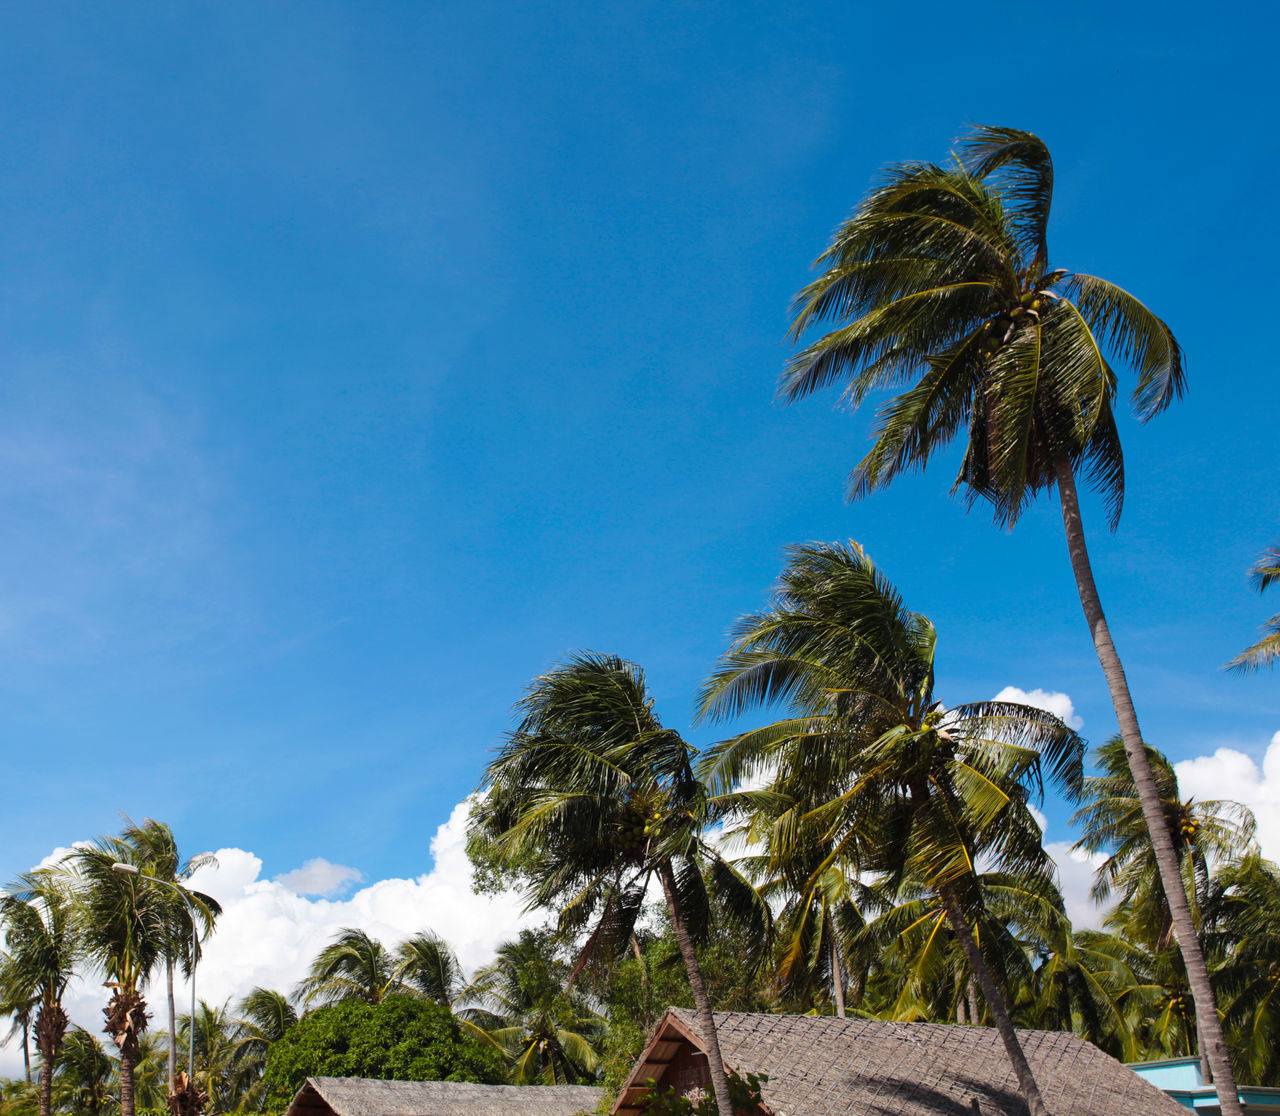 tree, palm tree, low angle view, growth, sky, nature, day, outdoors, blue, beauty in nature, tree trunk, no people, scenics